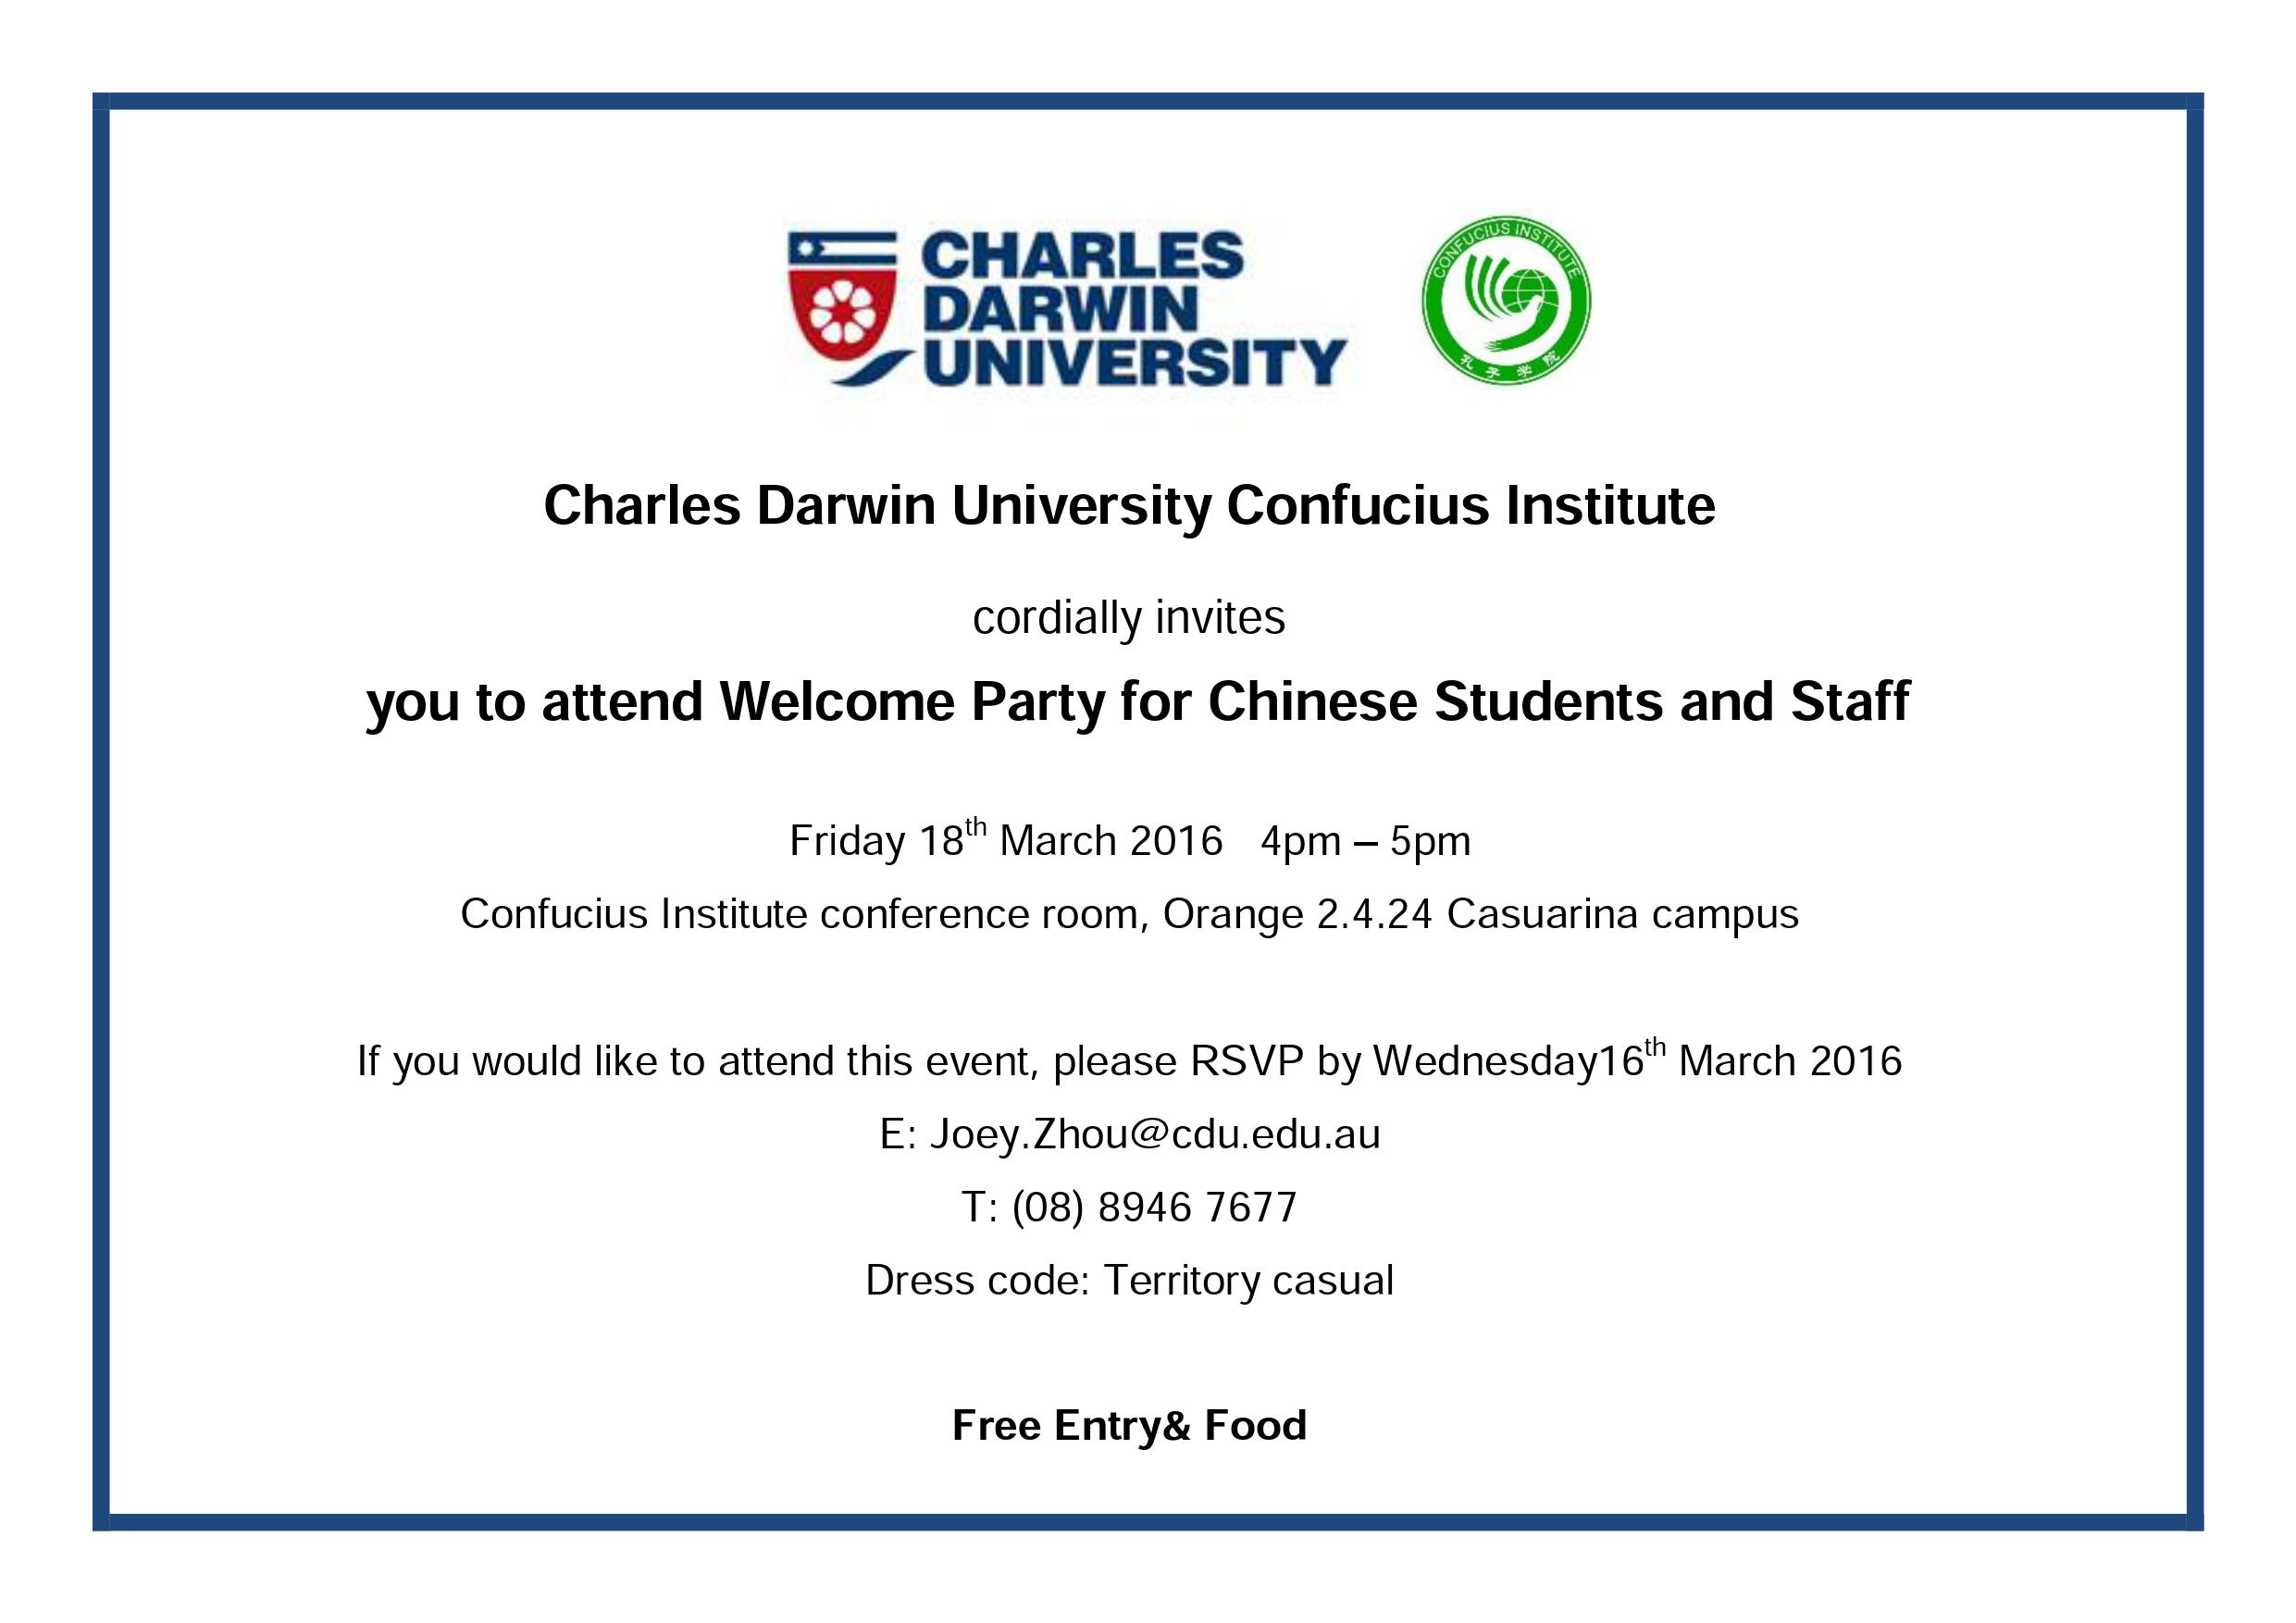 Invitation-Welcome event for Chinese students and staff